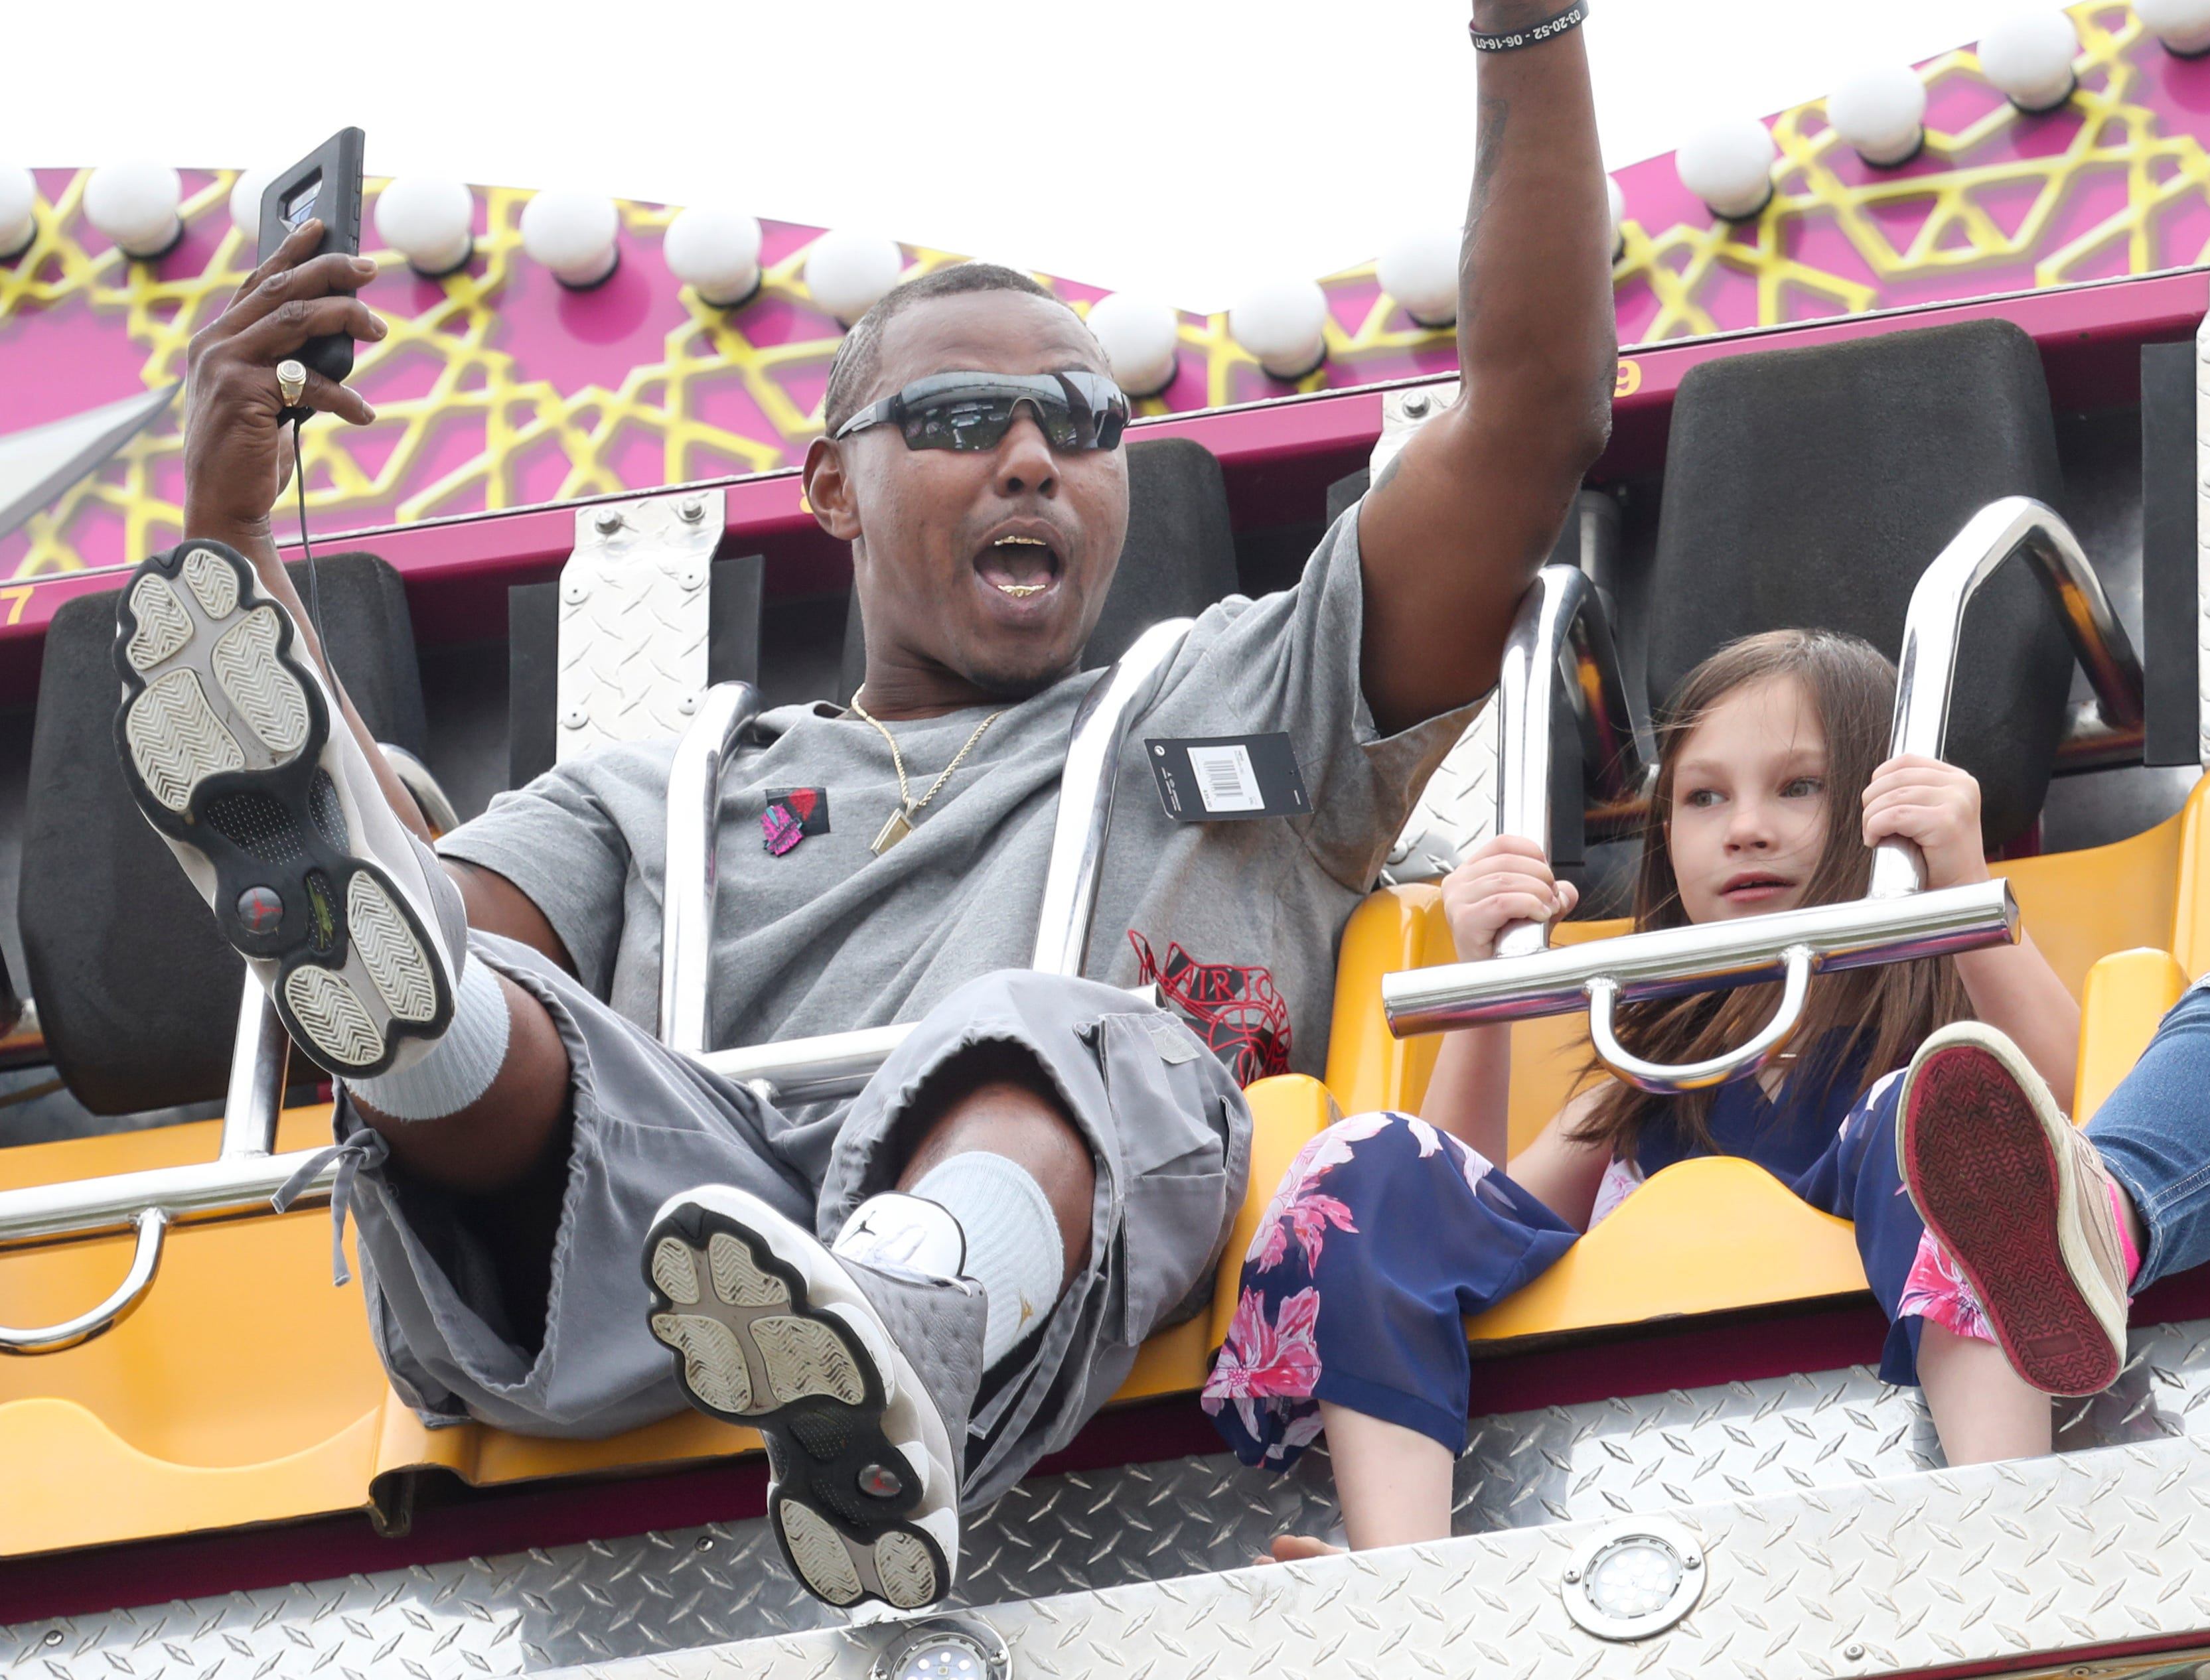 Thomas Coleman was having a blast on the rides at Thunder Over Louisville on April 13.